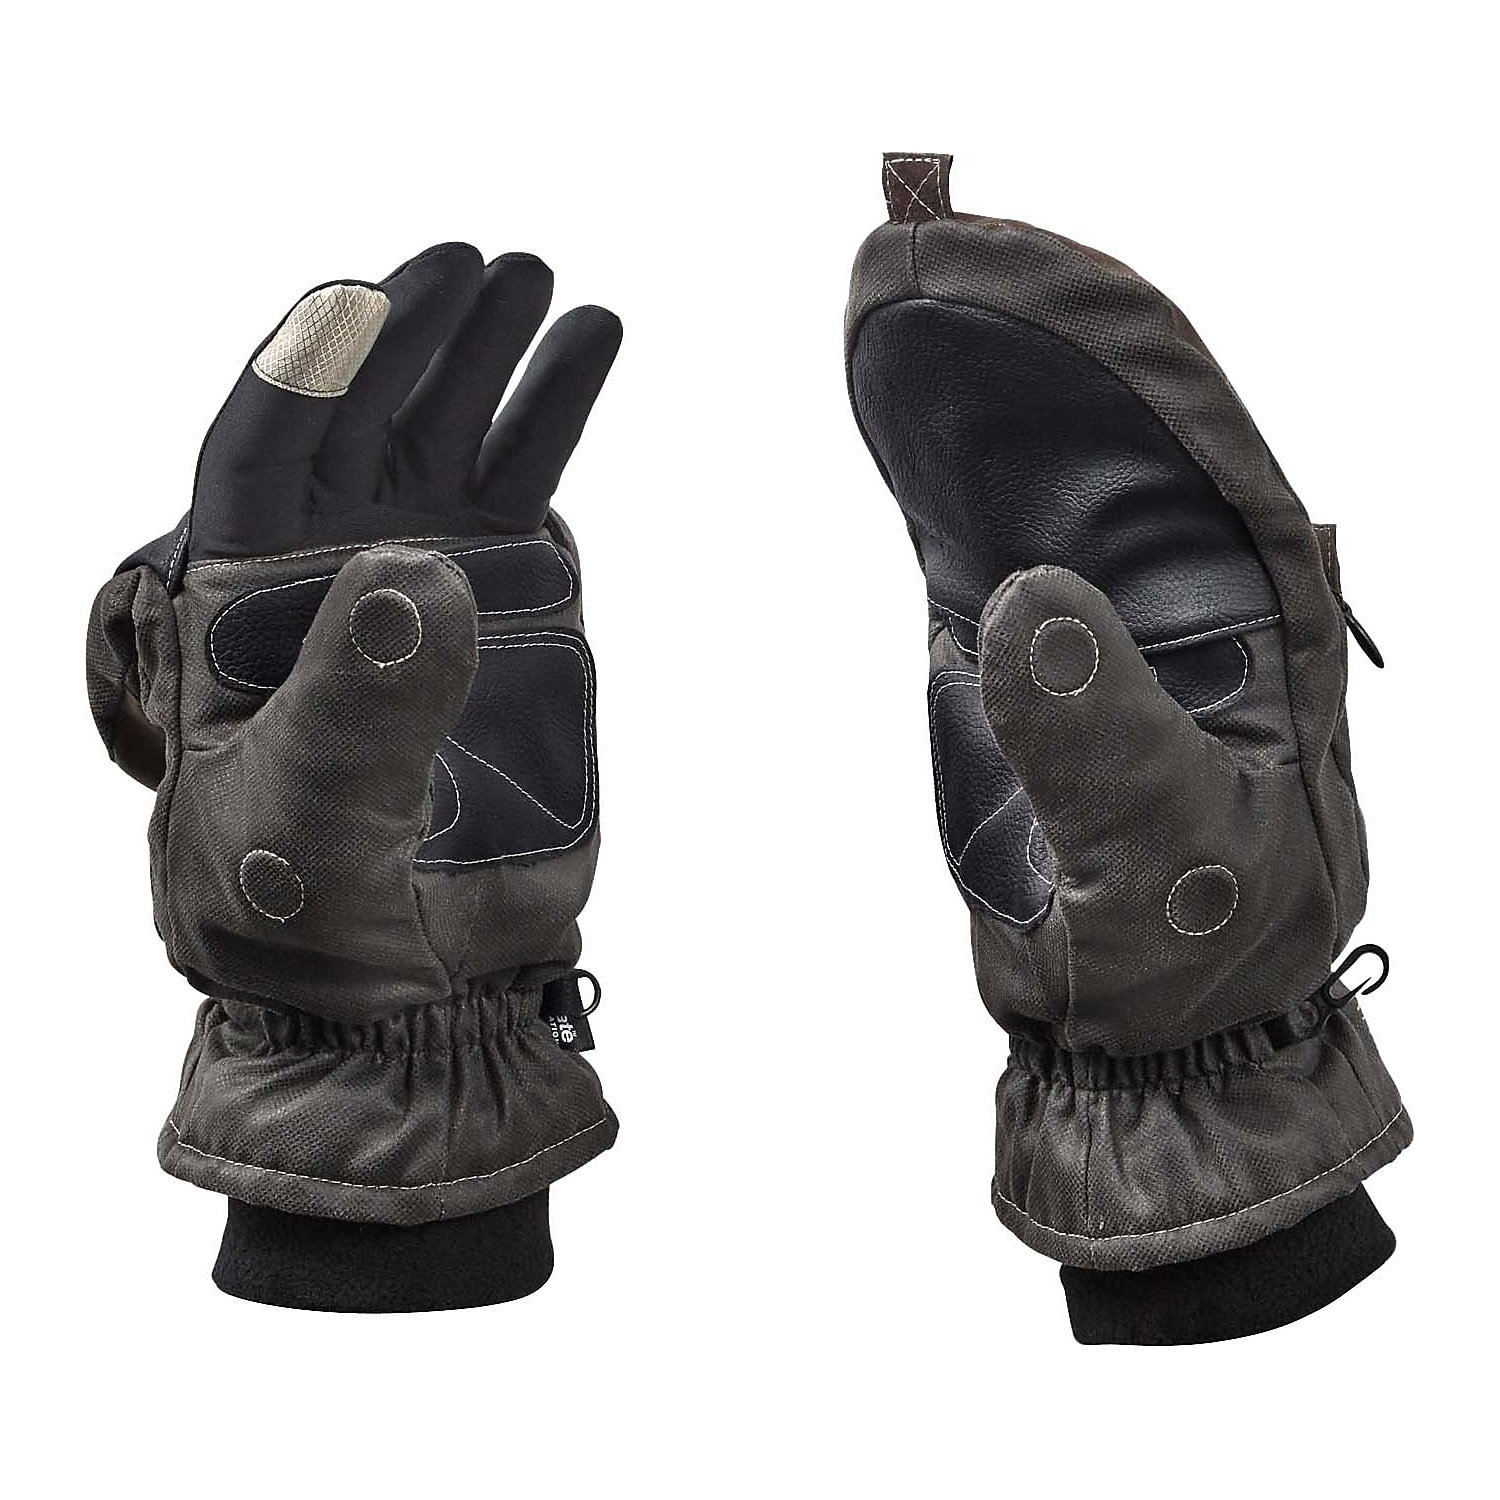 Legendary Whitetails Men's Arctic Tundra Pop Top Gloves Charcoal X-Large